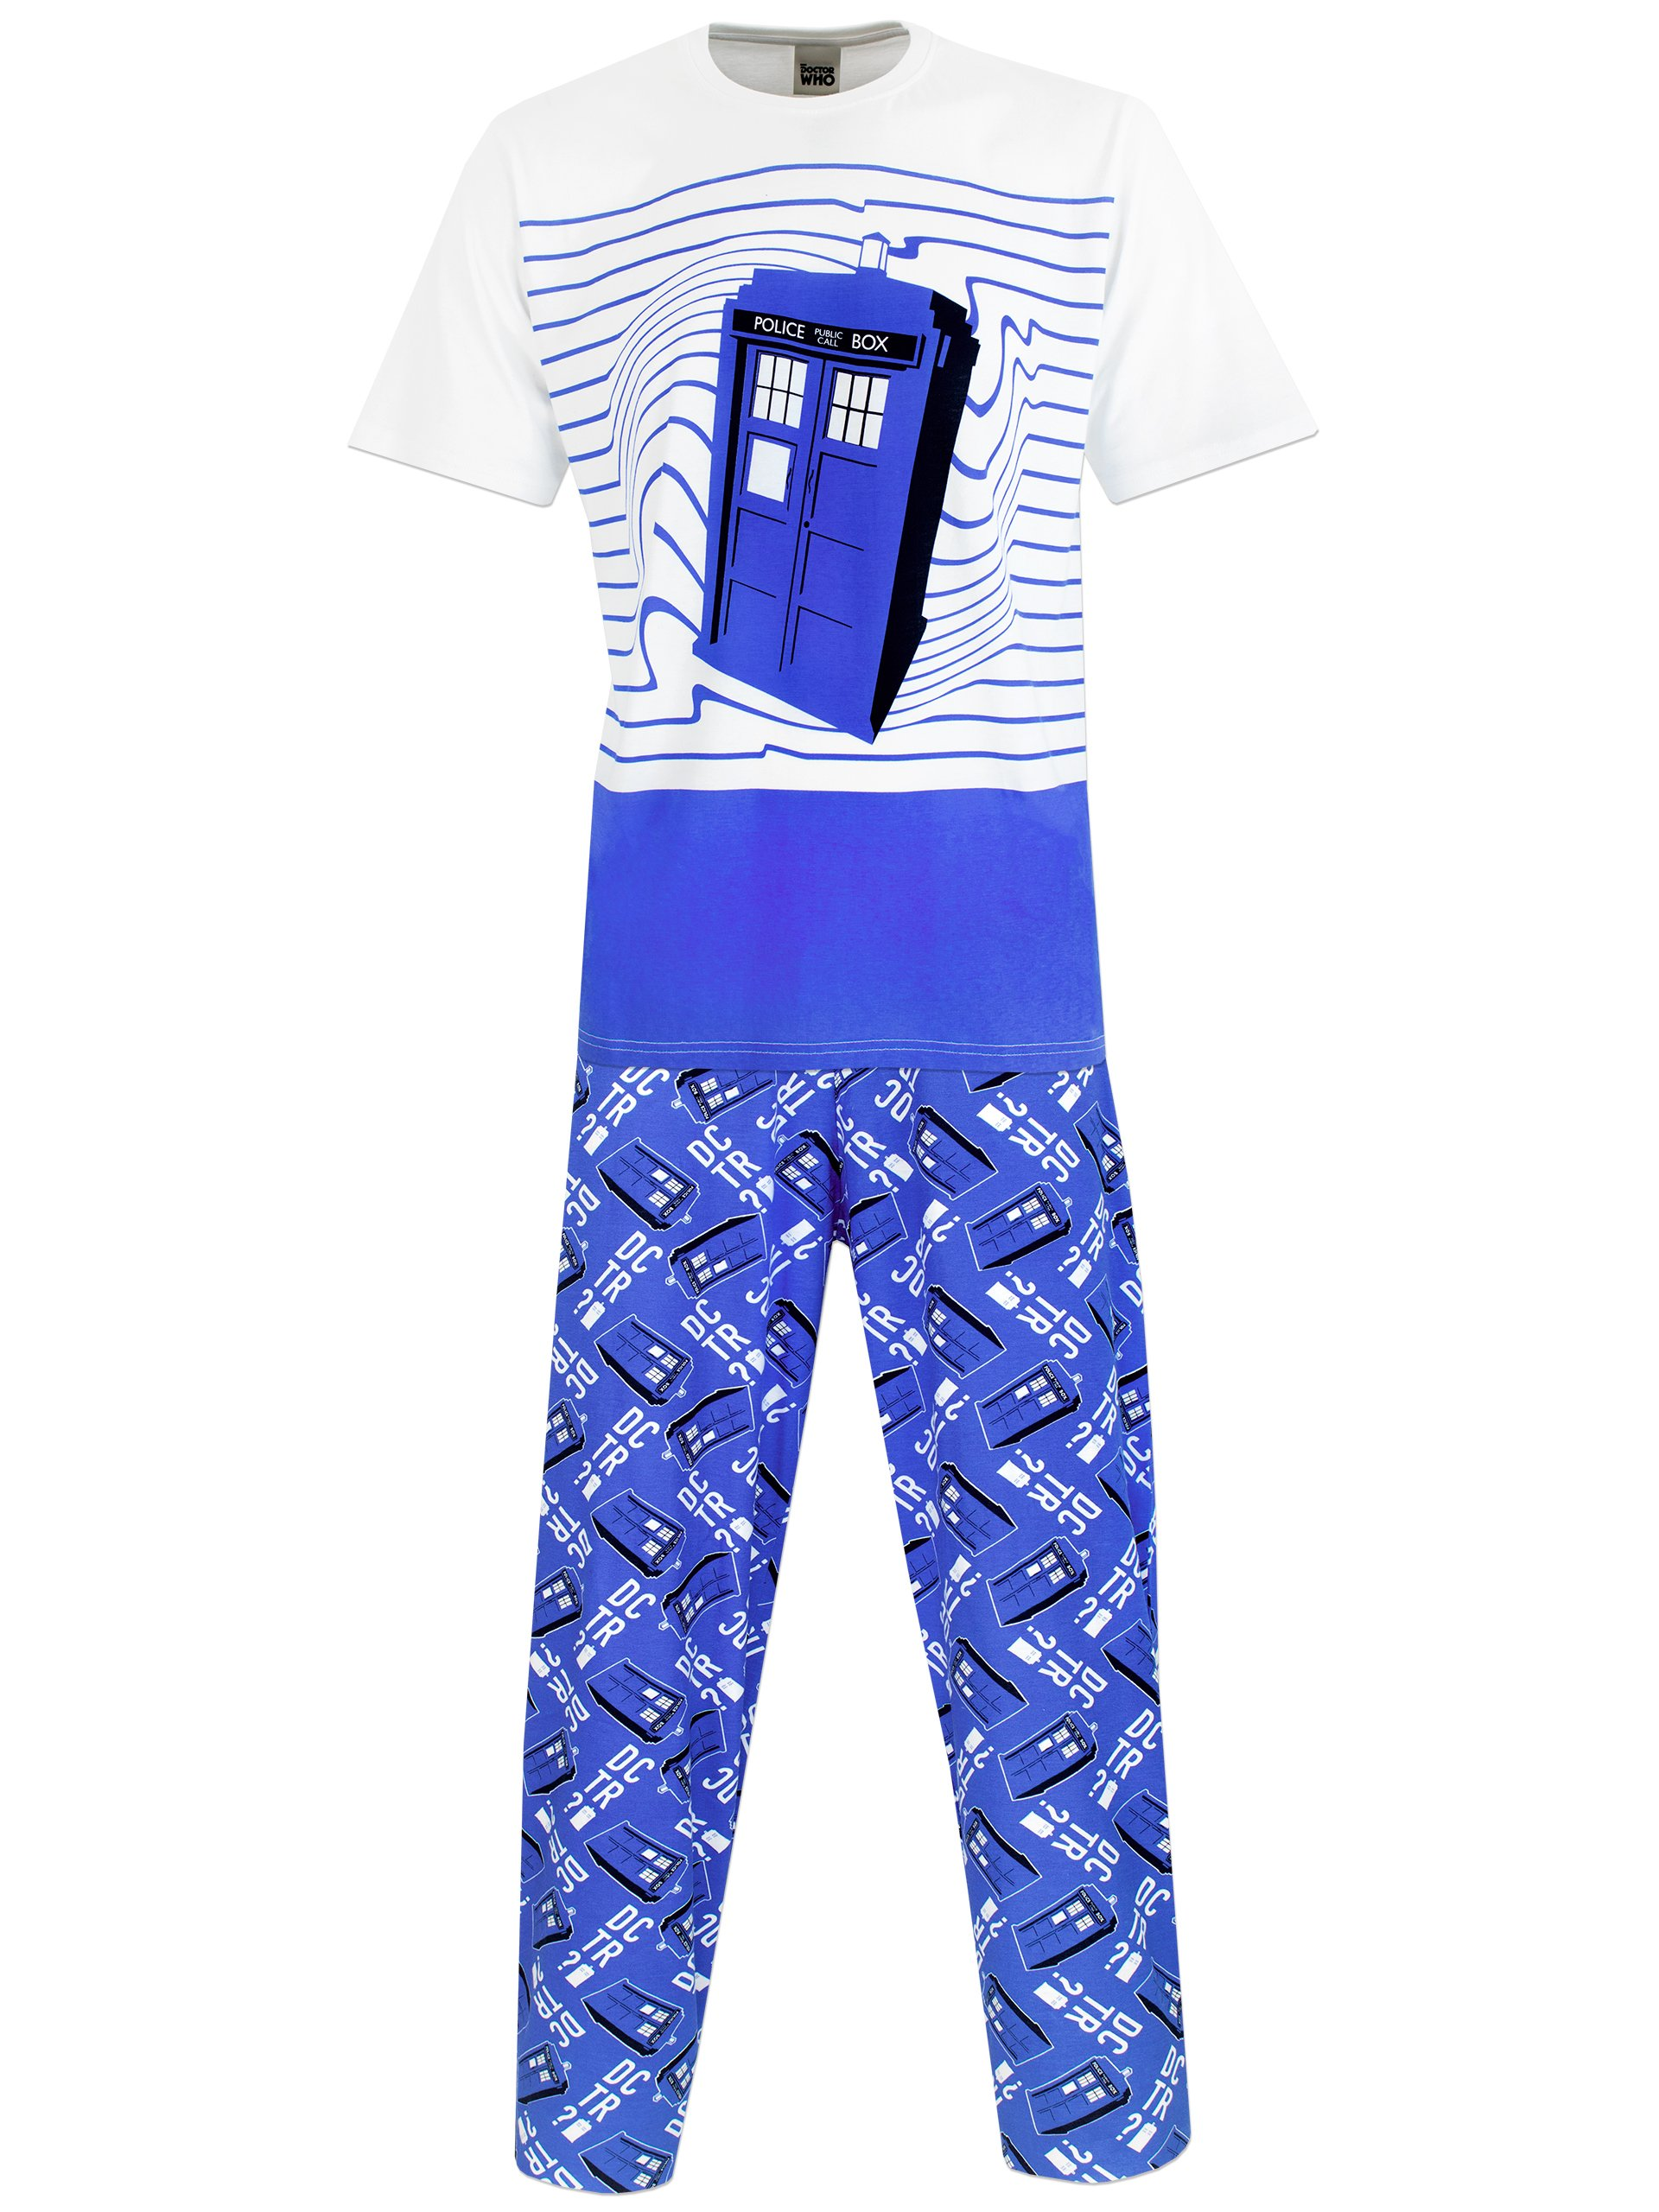 Dr Who Pijama para Hombre Doctor Who product image